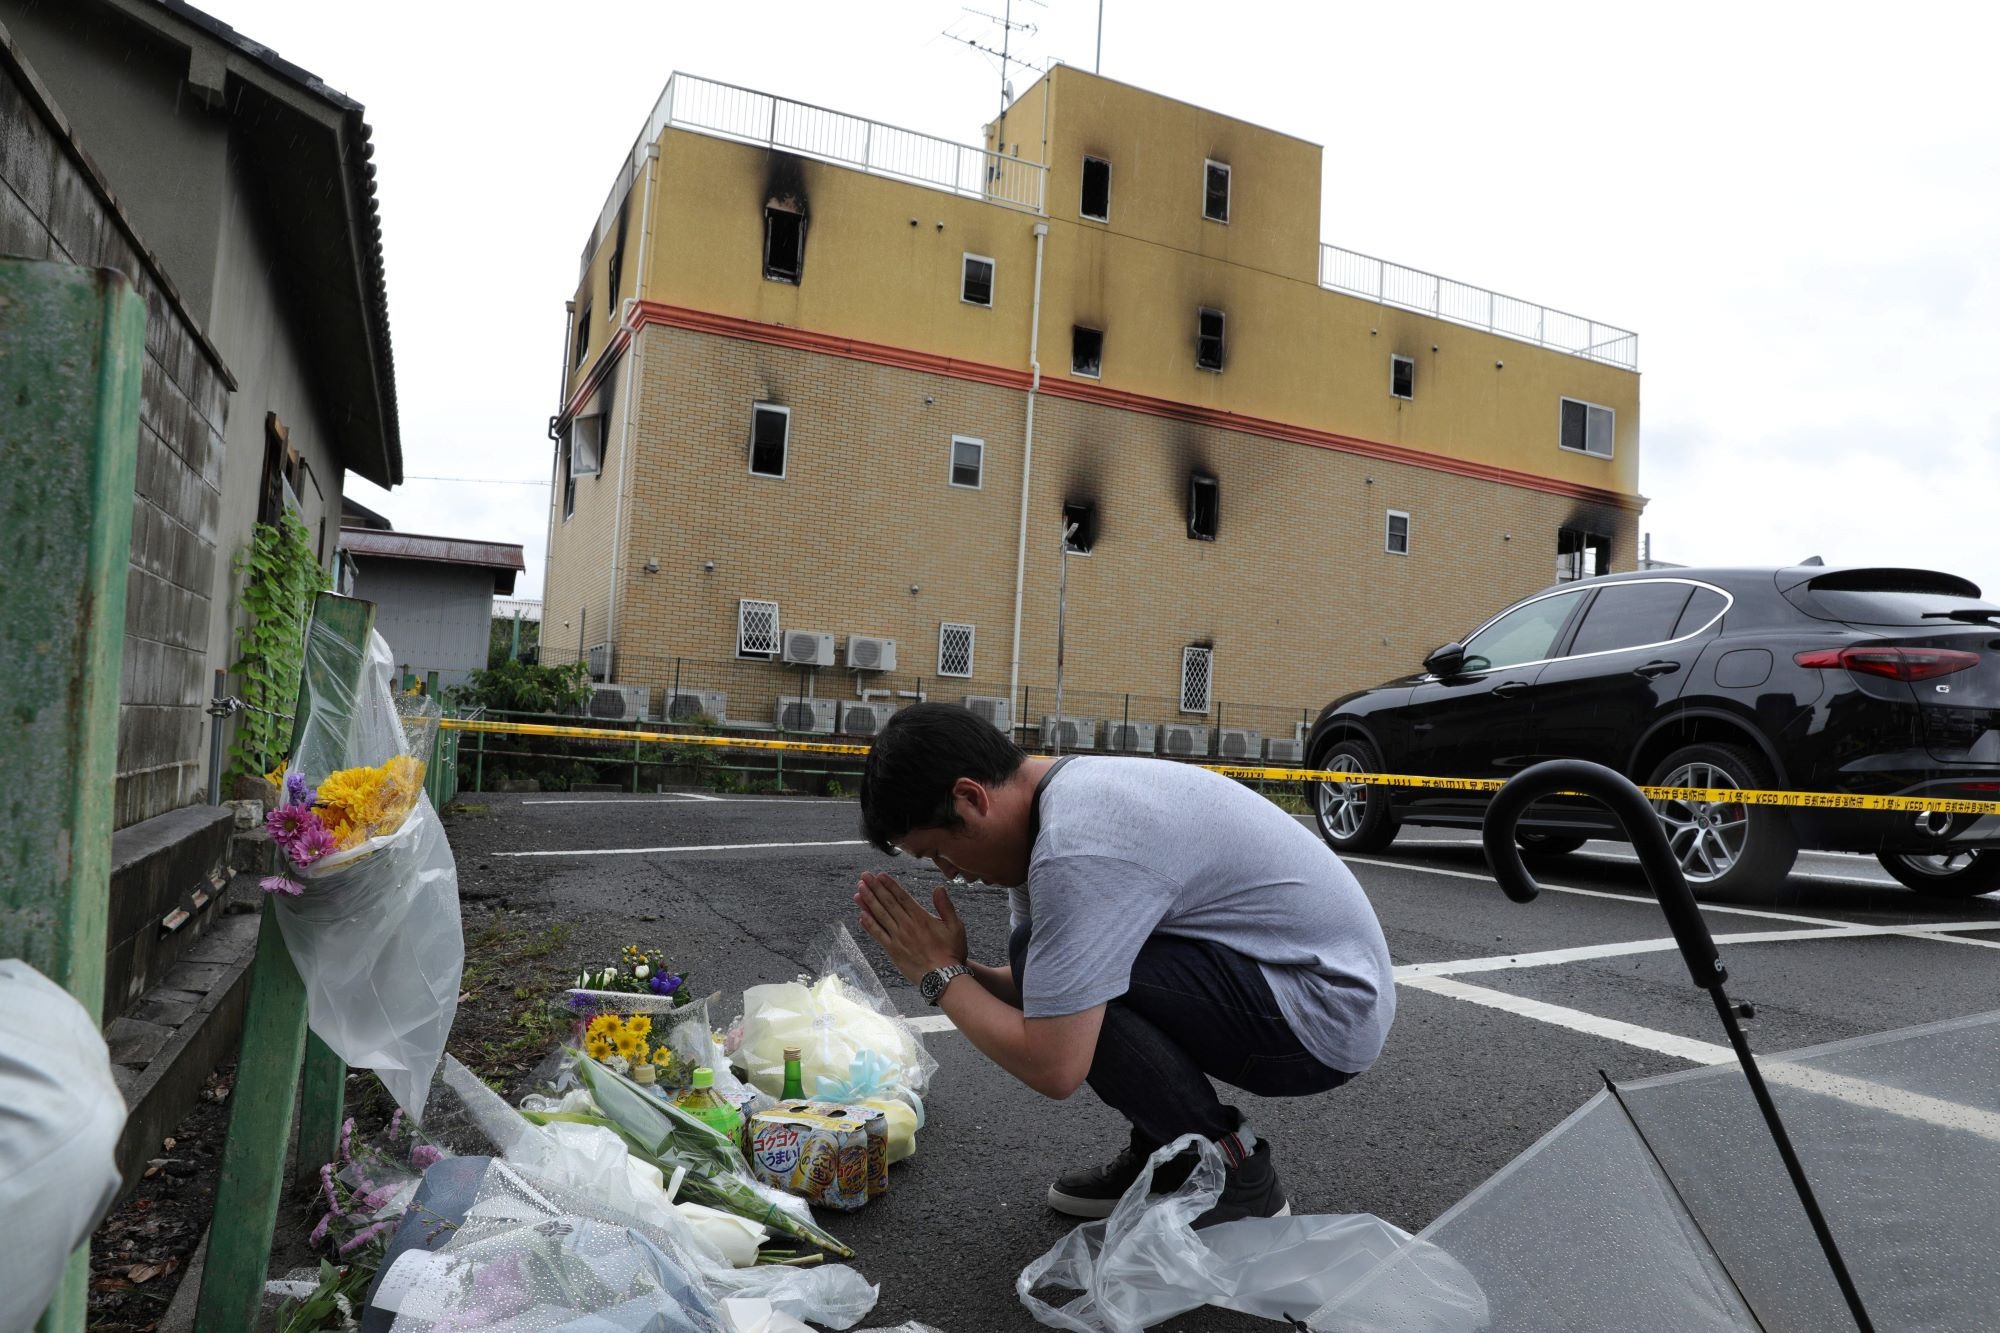 After a Deadly Attack at a Kyoto Anime Studio, Donors Pledge More Than $1 Million to Support the Artist Victims and Their Families